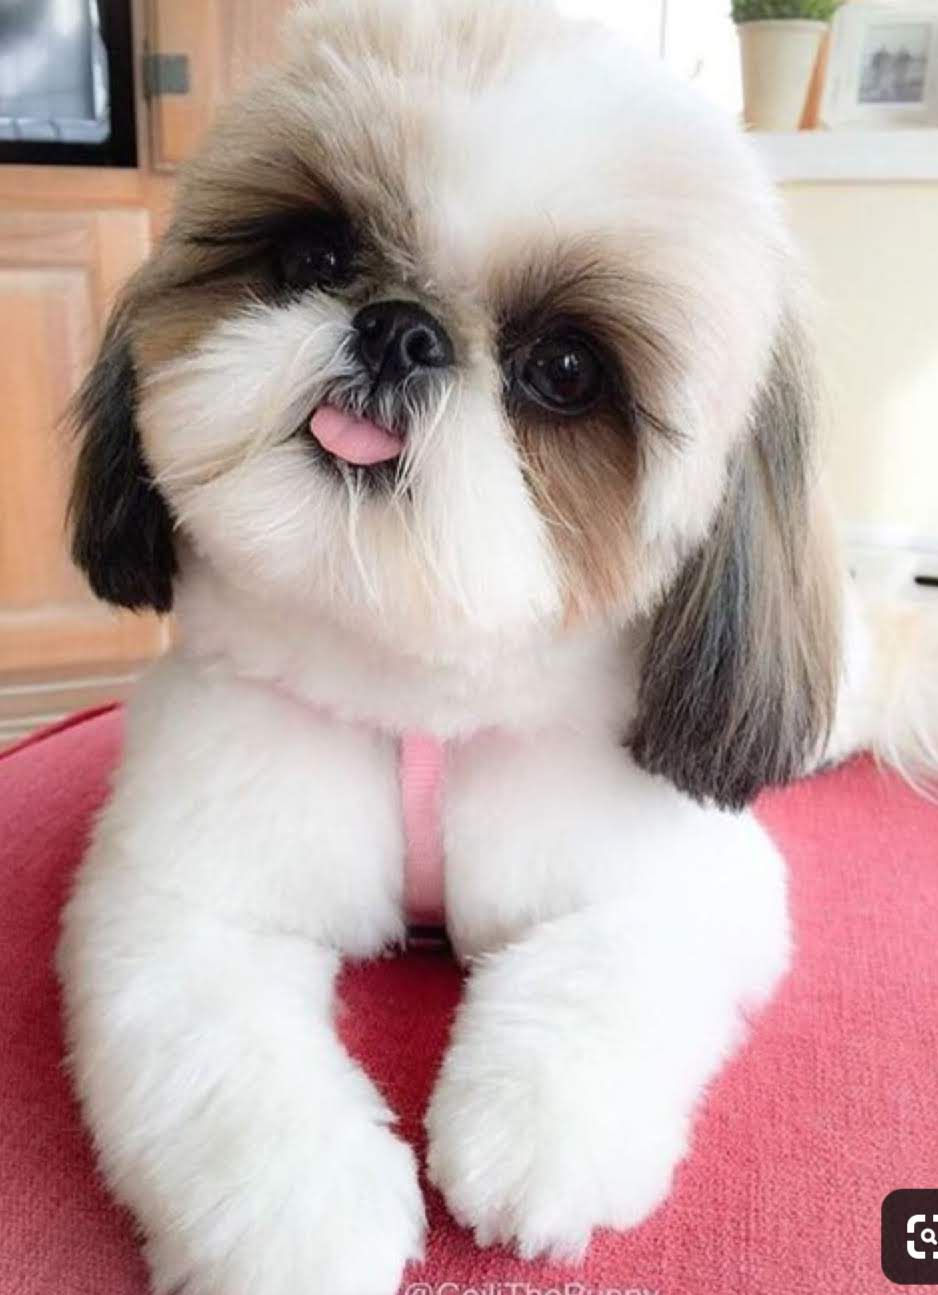 Pin By Michaelle Maggitti On Love My Shih Tzu Pals Shitzu Dogs Cute Dogs Breeds Cute Dogs